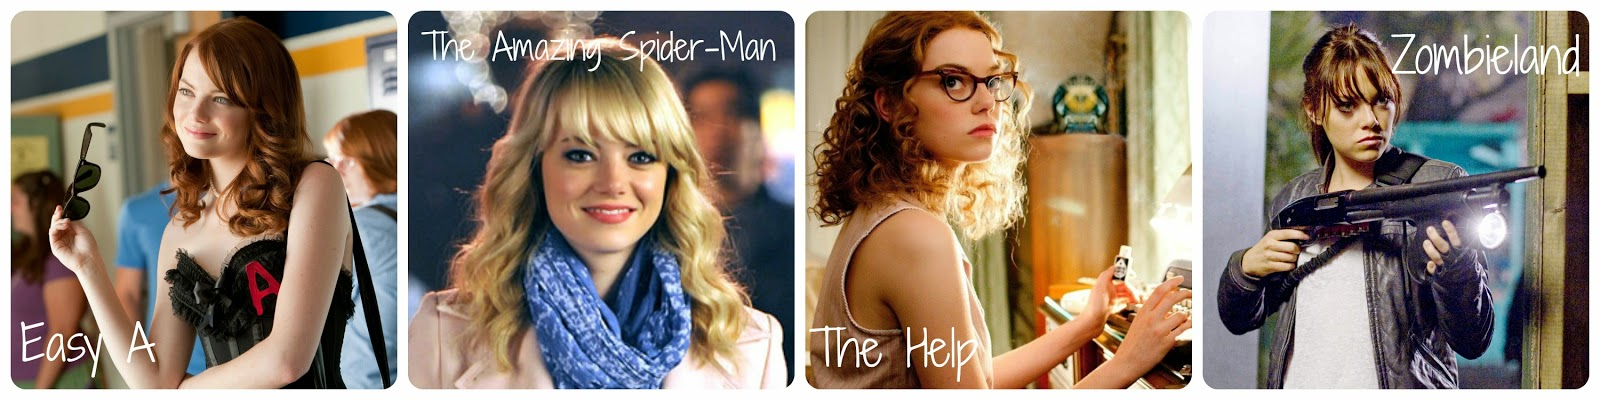 emma-stone-easy-a-amazing-spiderman-help-zombieland